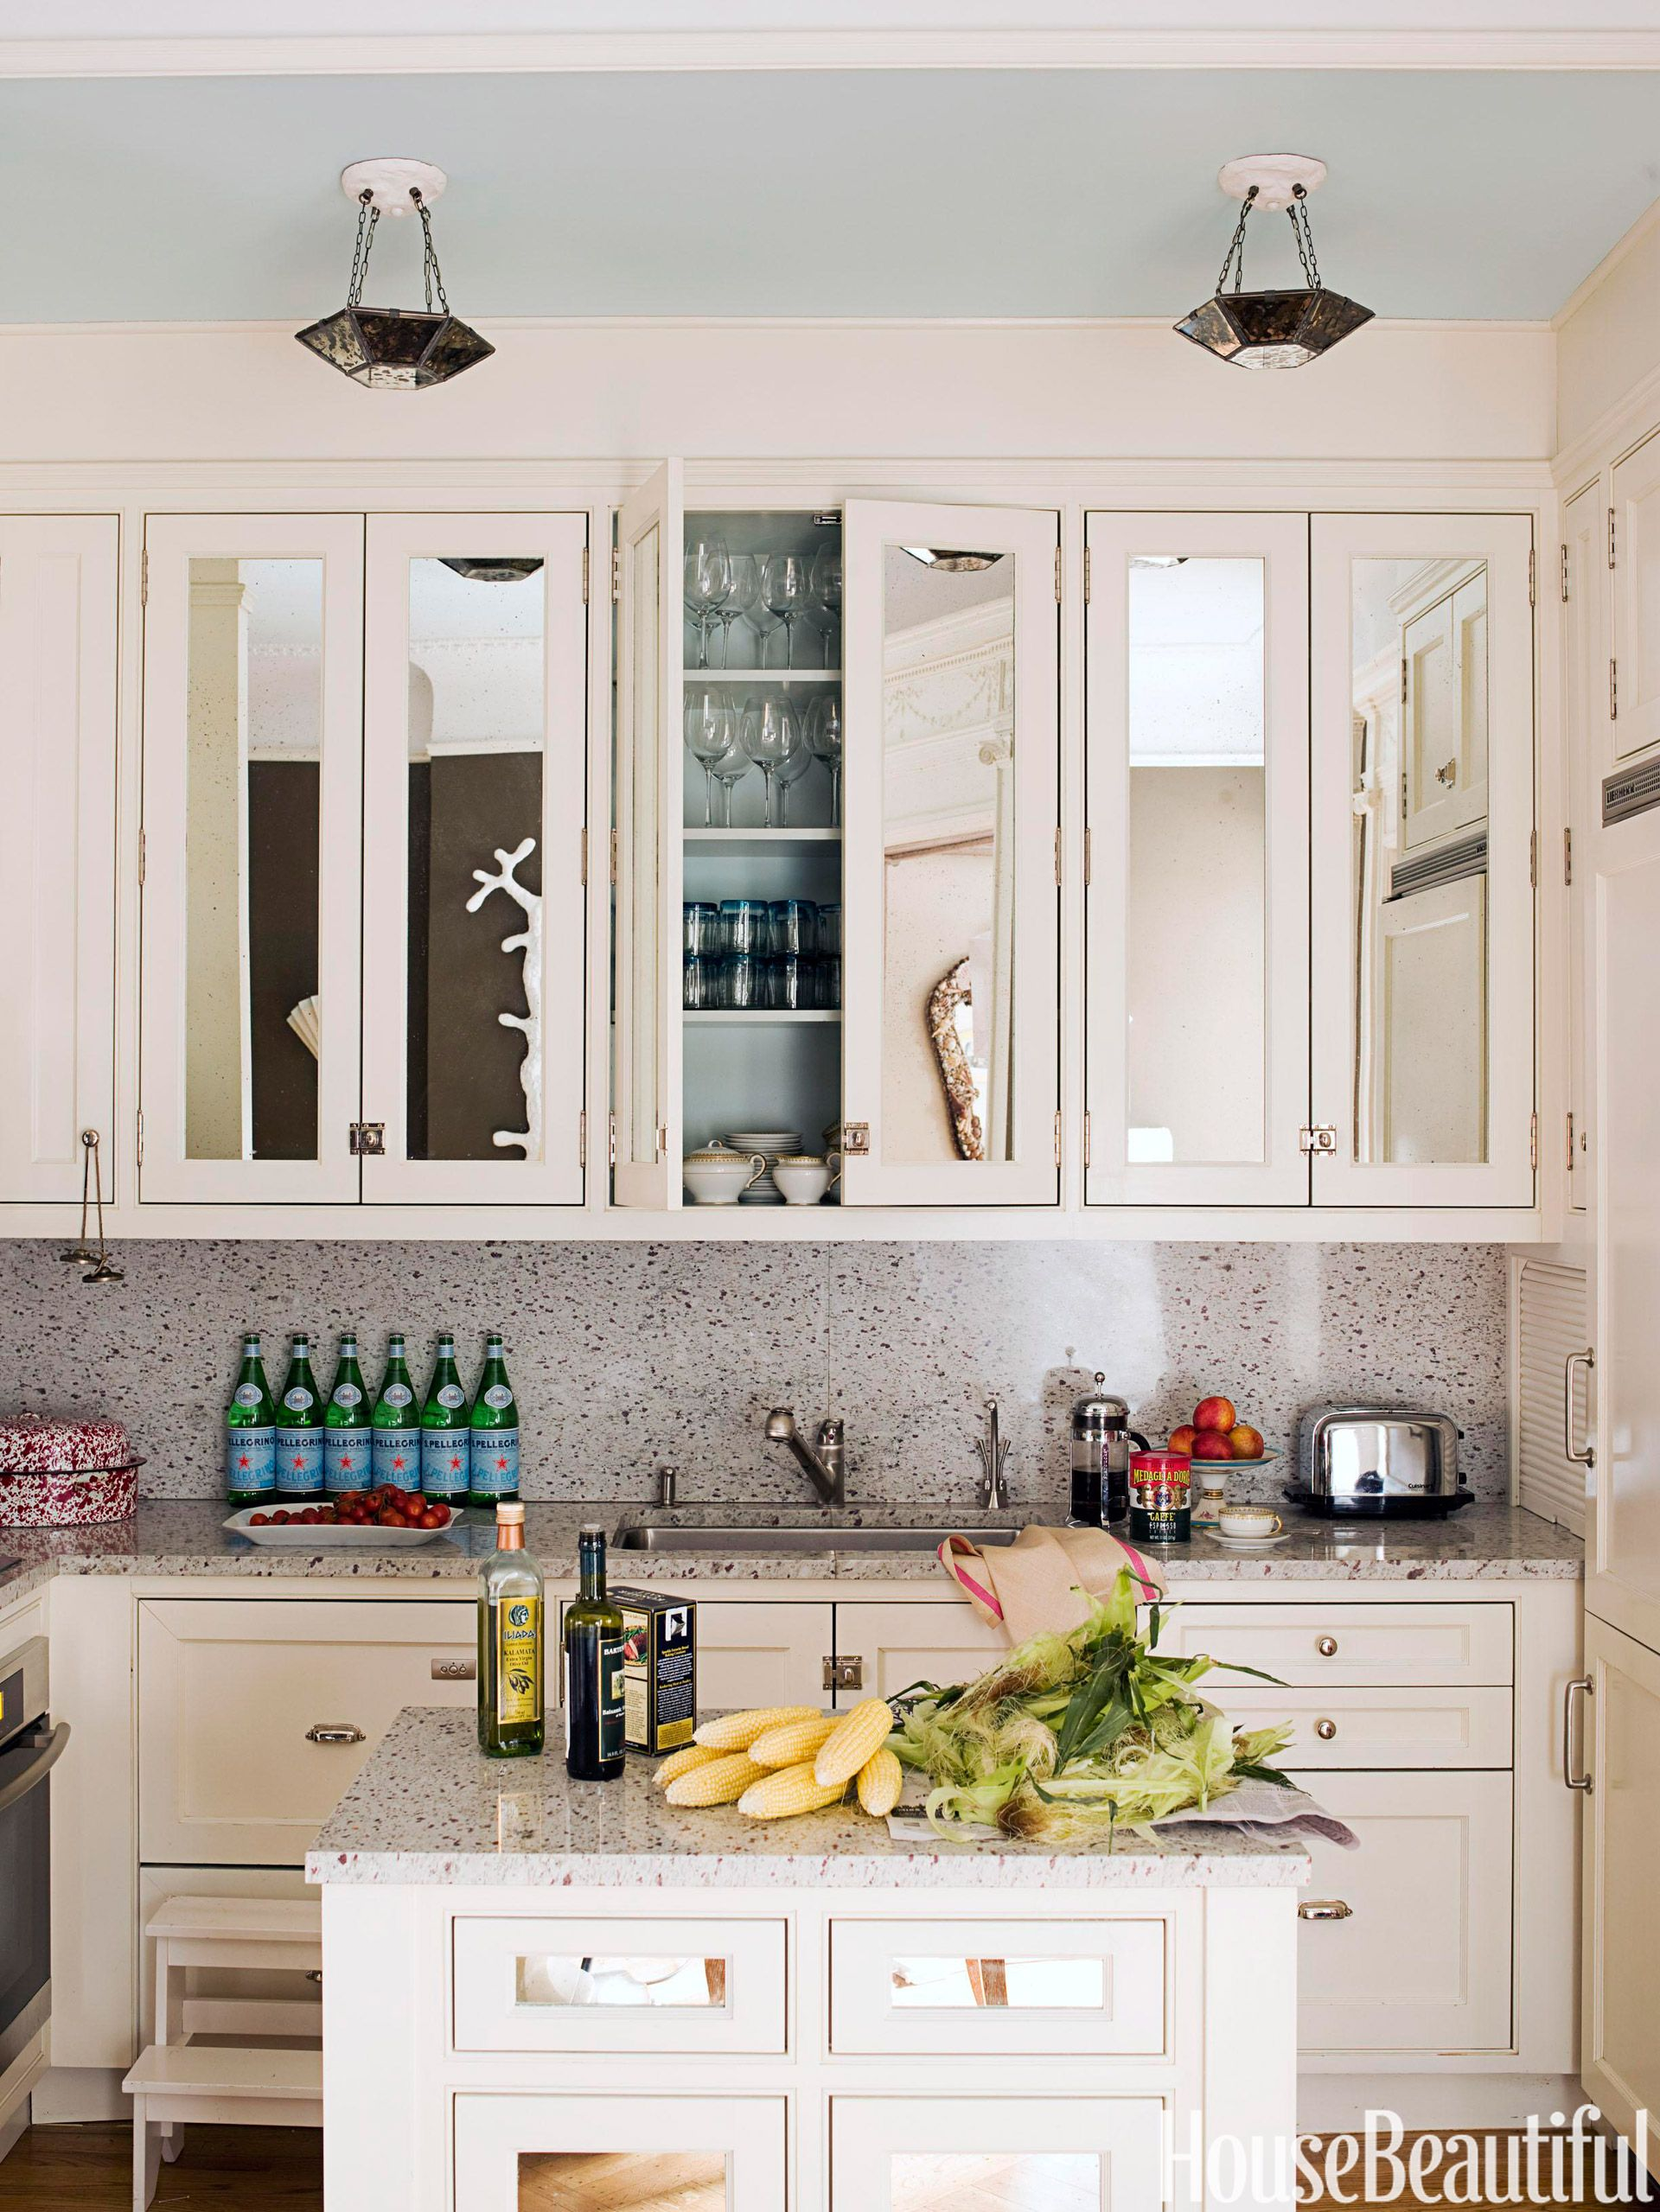 Photos Of White Kitchen Cabinets 17 White Kitchen Cabinet Ideas Paint Colors And Hardware For